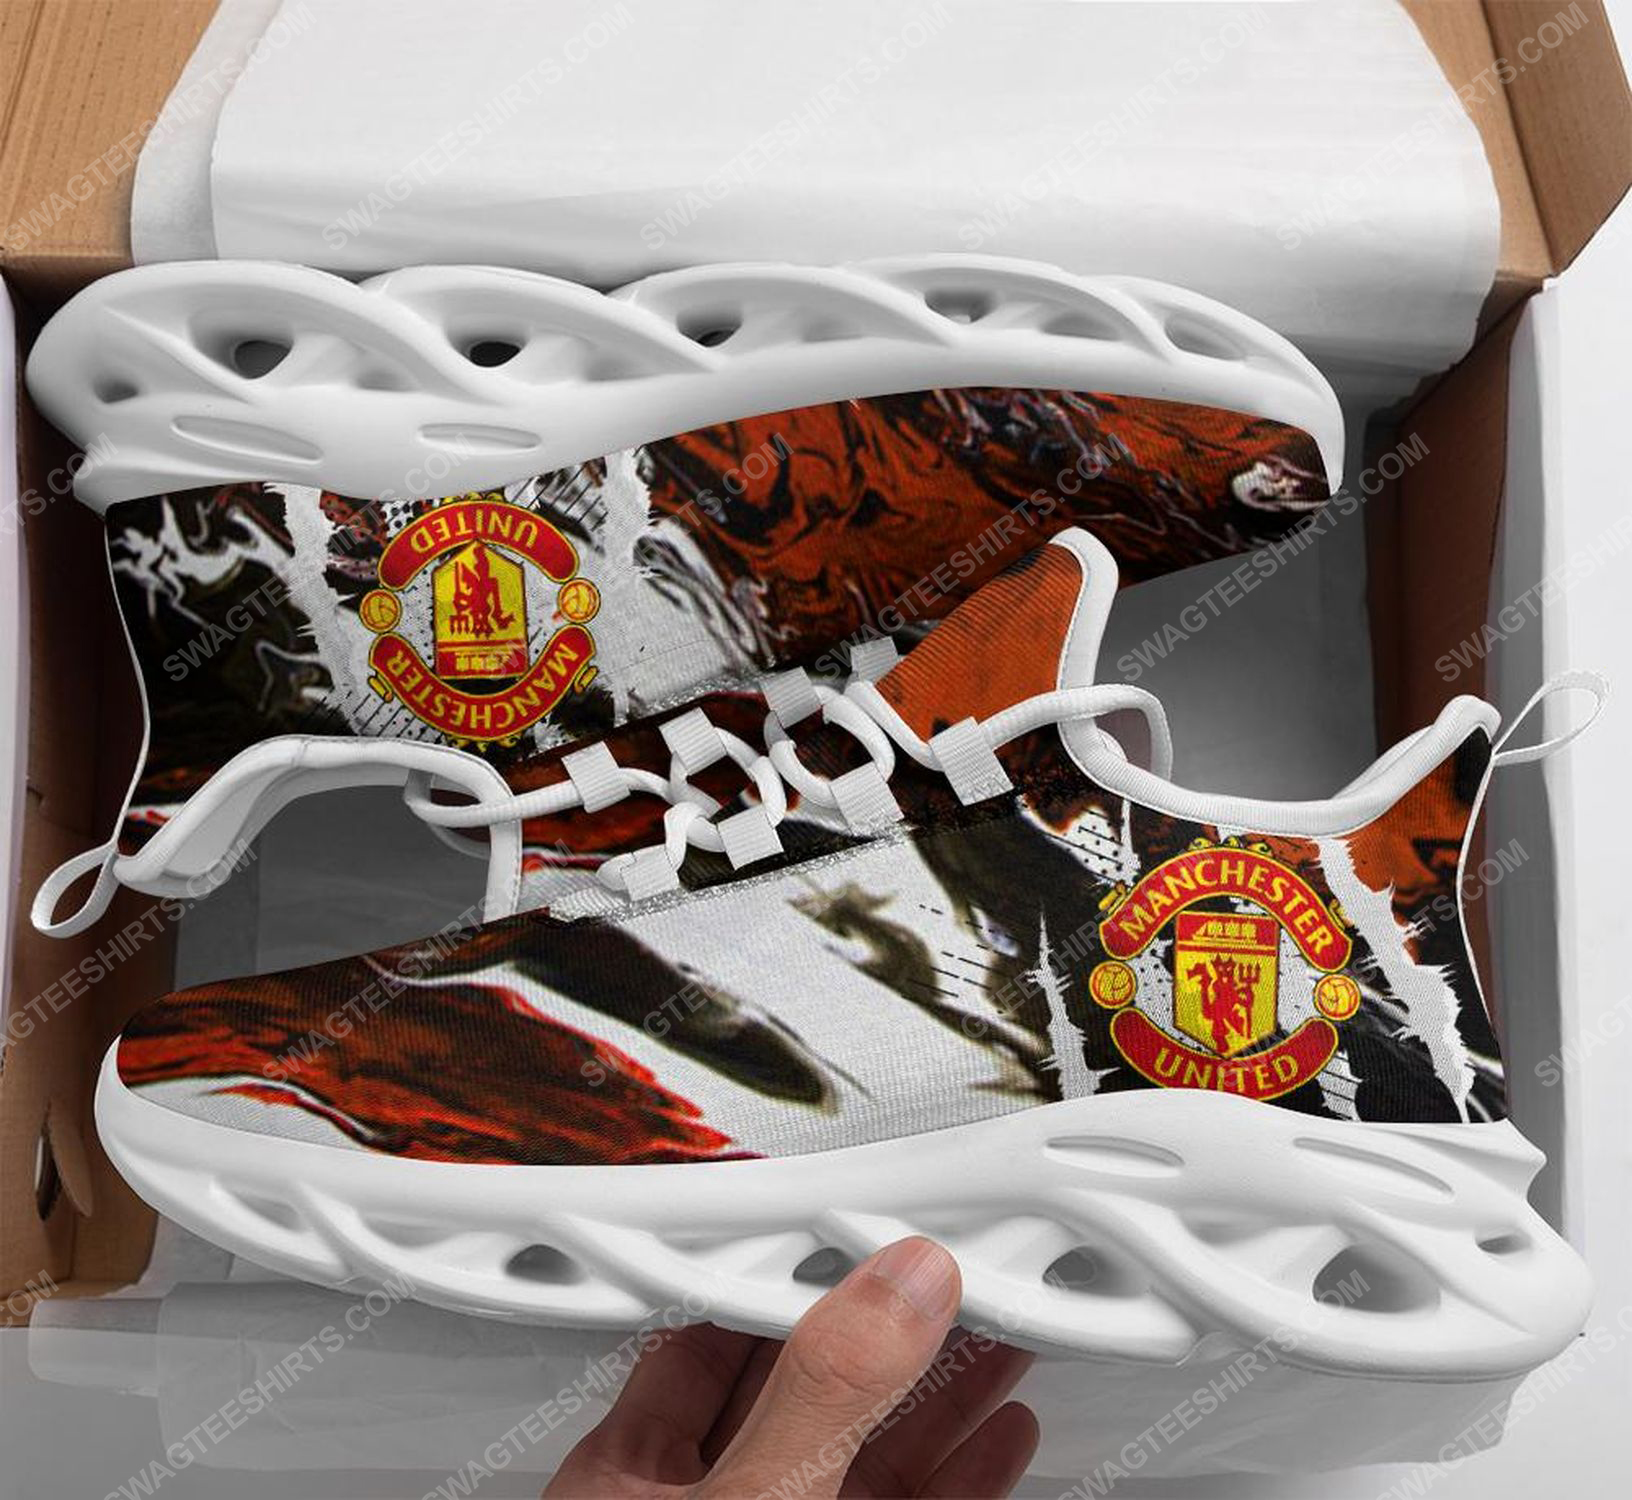 The manchester united football club max soul shoes 1 - Copy (2)